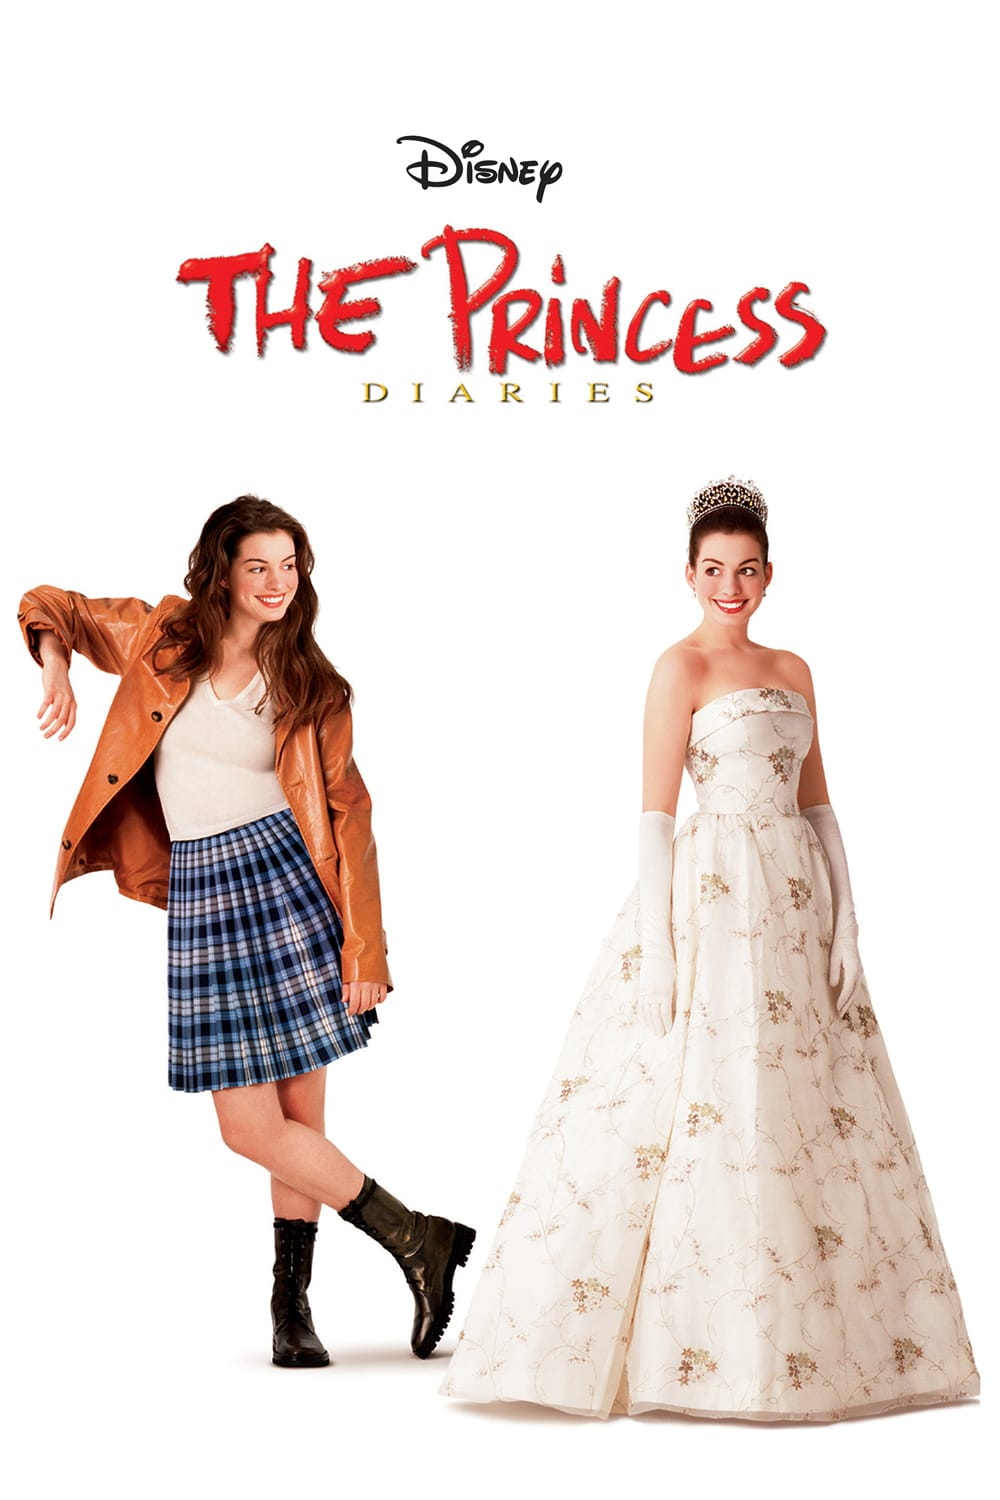 The Princess Diaries 2 Movie Poster | www.imgkid.com - The ...